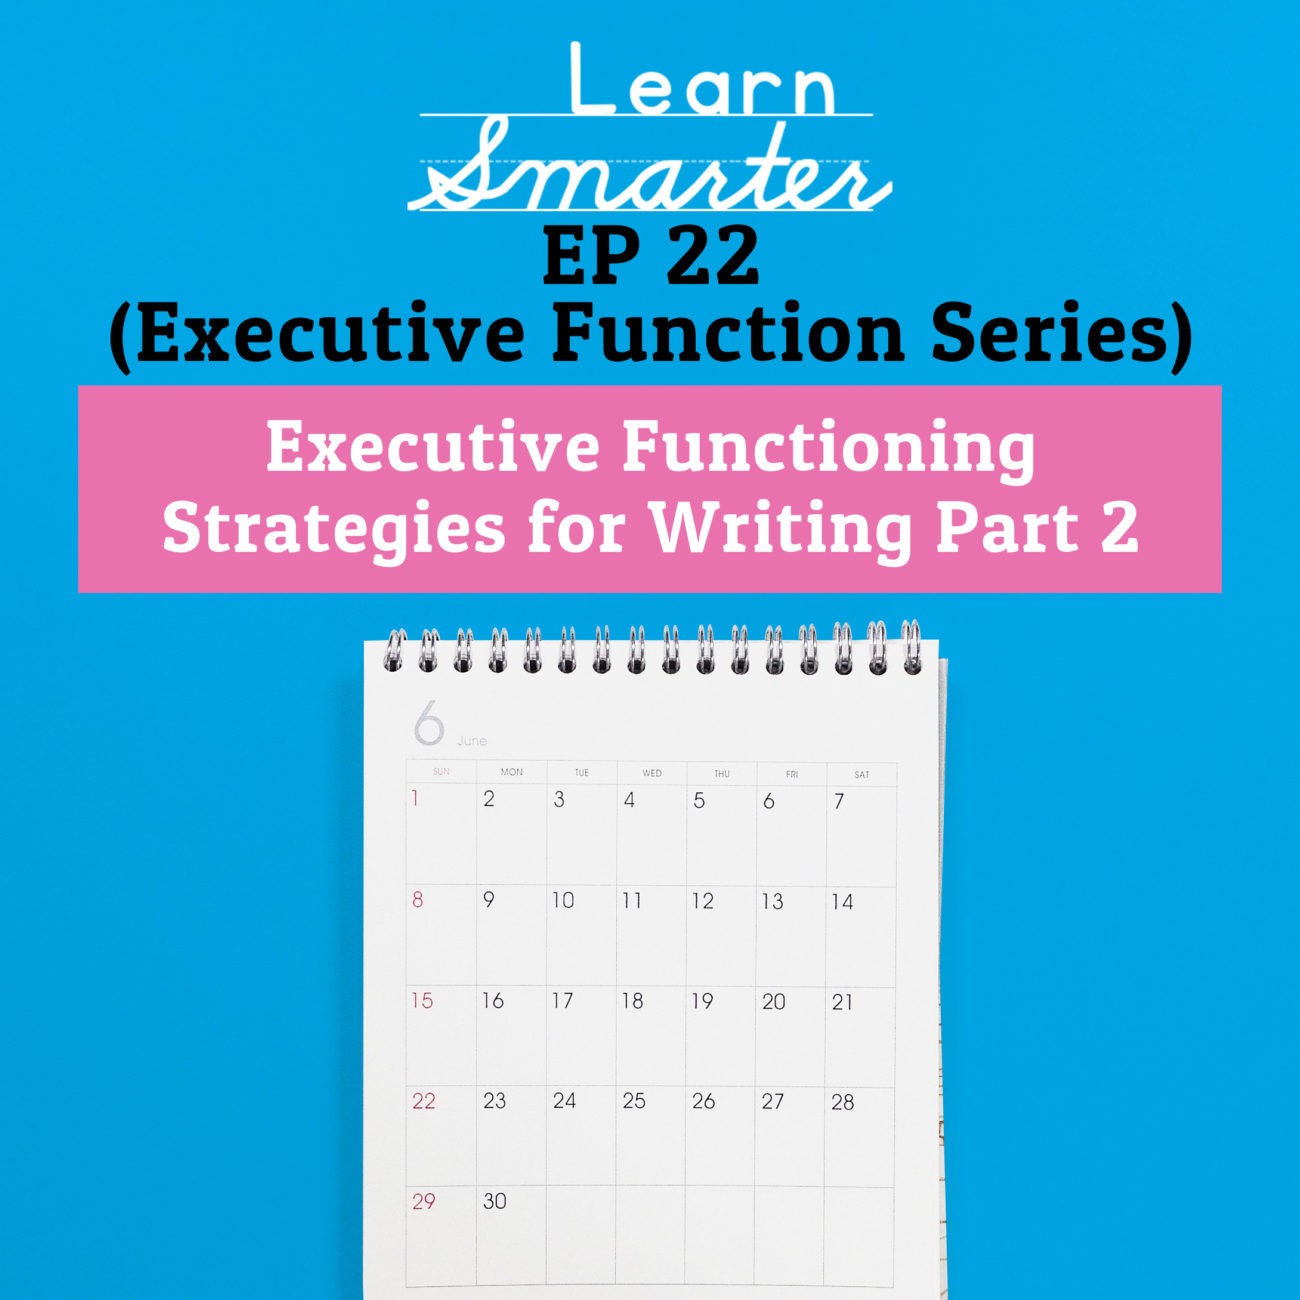 22: Executive Functioning Strategies for Writing Part 2